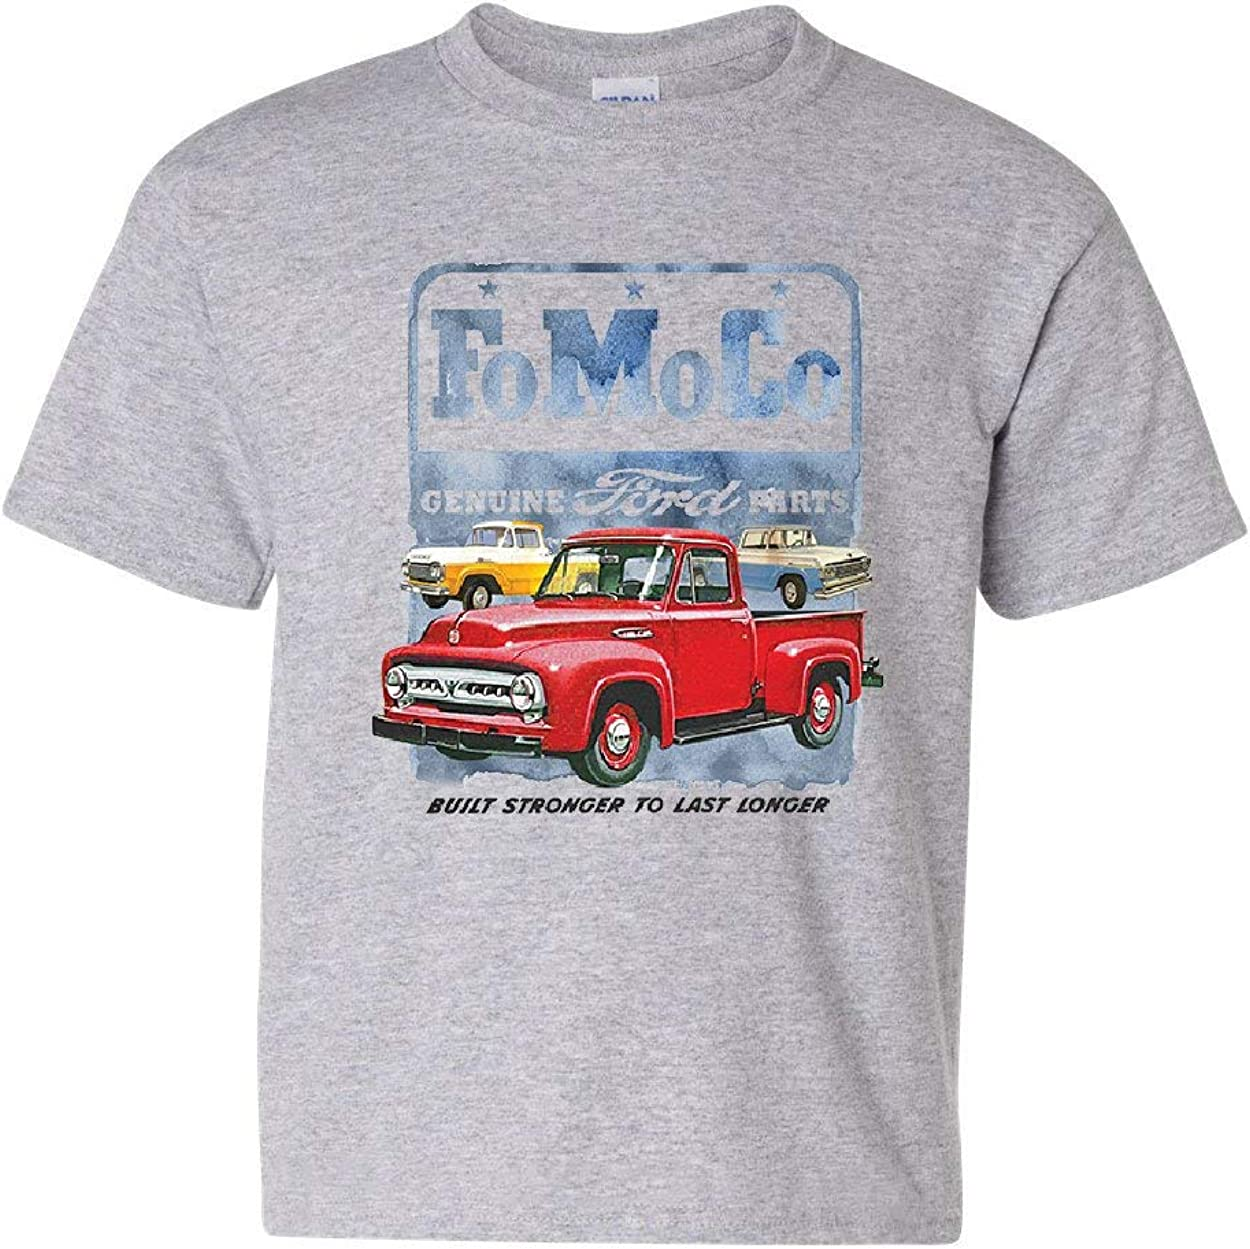 FoMoCo Ford Motor Company Youth T-Shirt Built Stronger to Last Longer Kids Tee